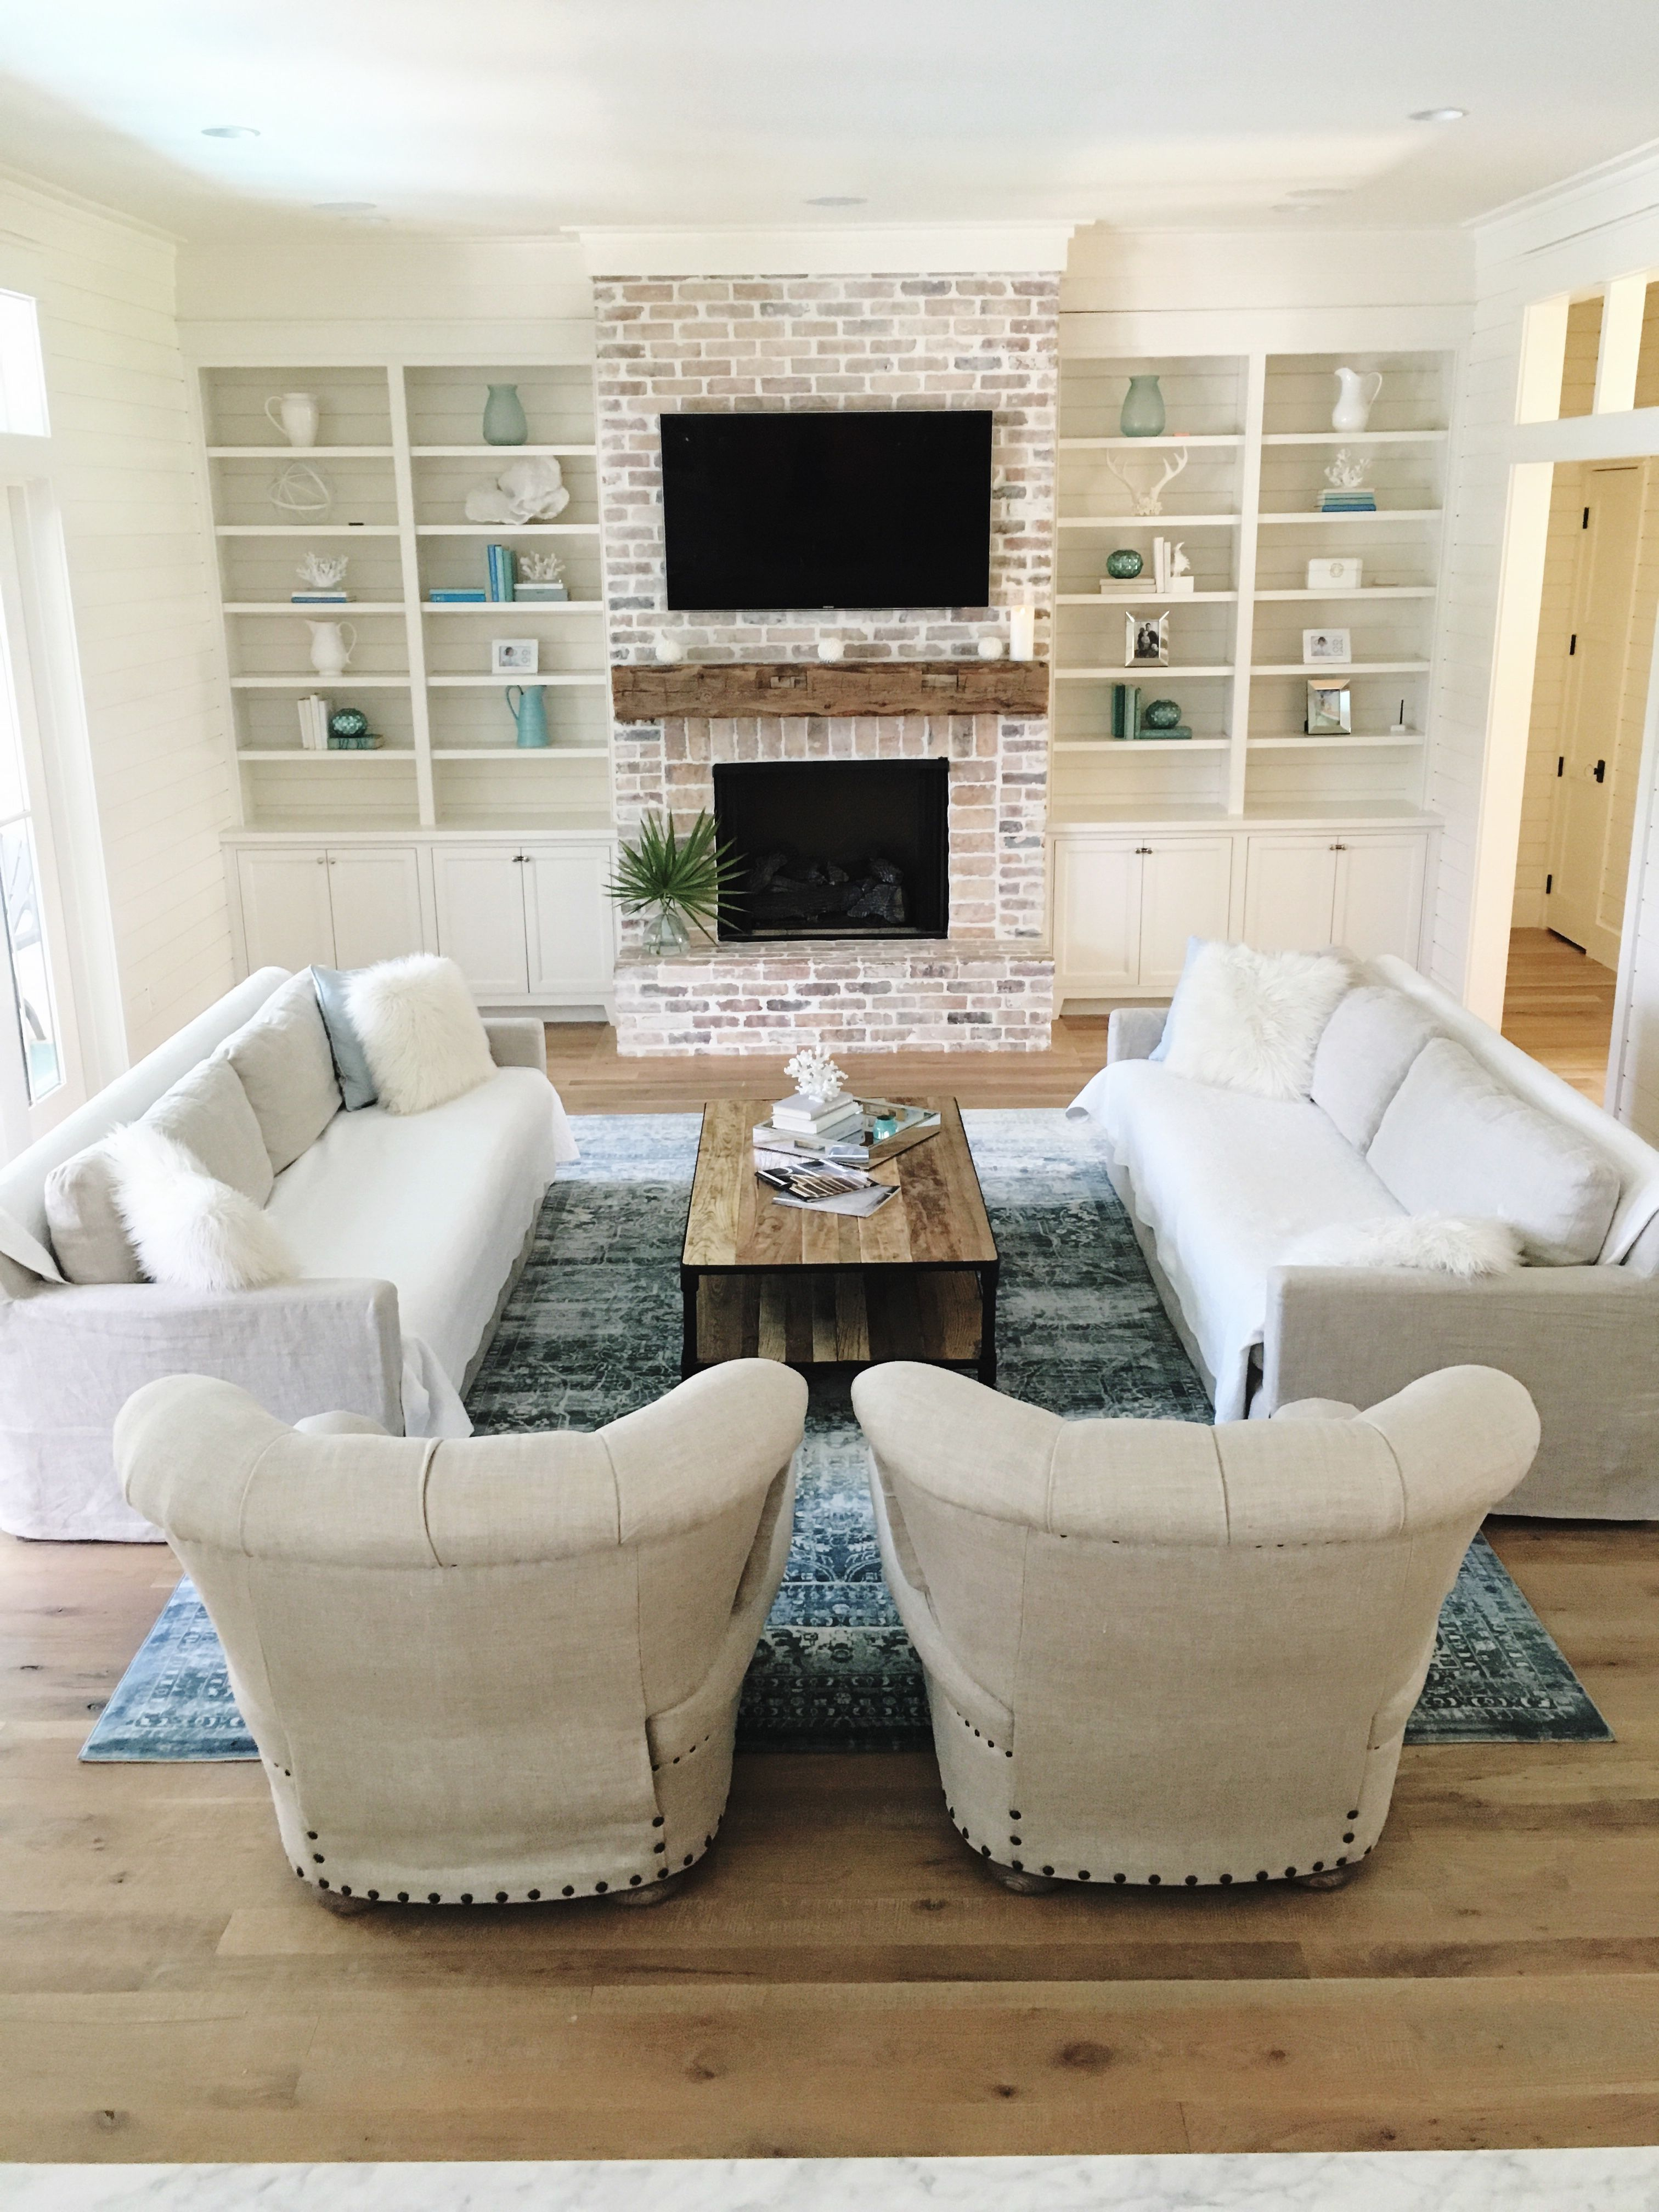 Coastal Farmhouse living room. White washed brick, oak